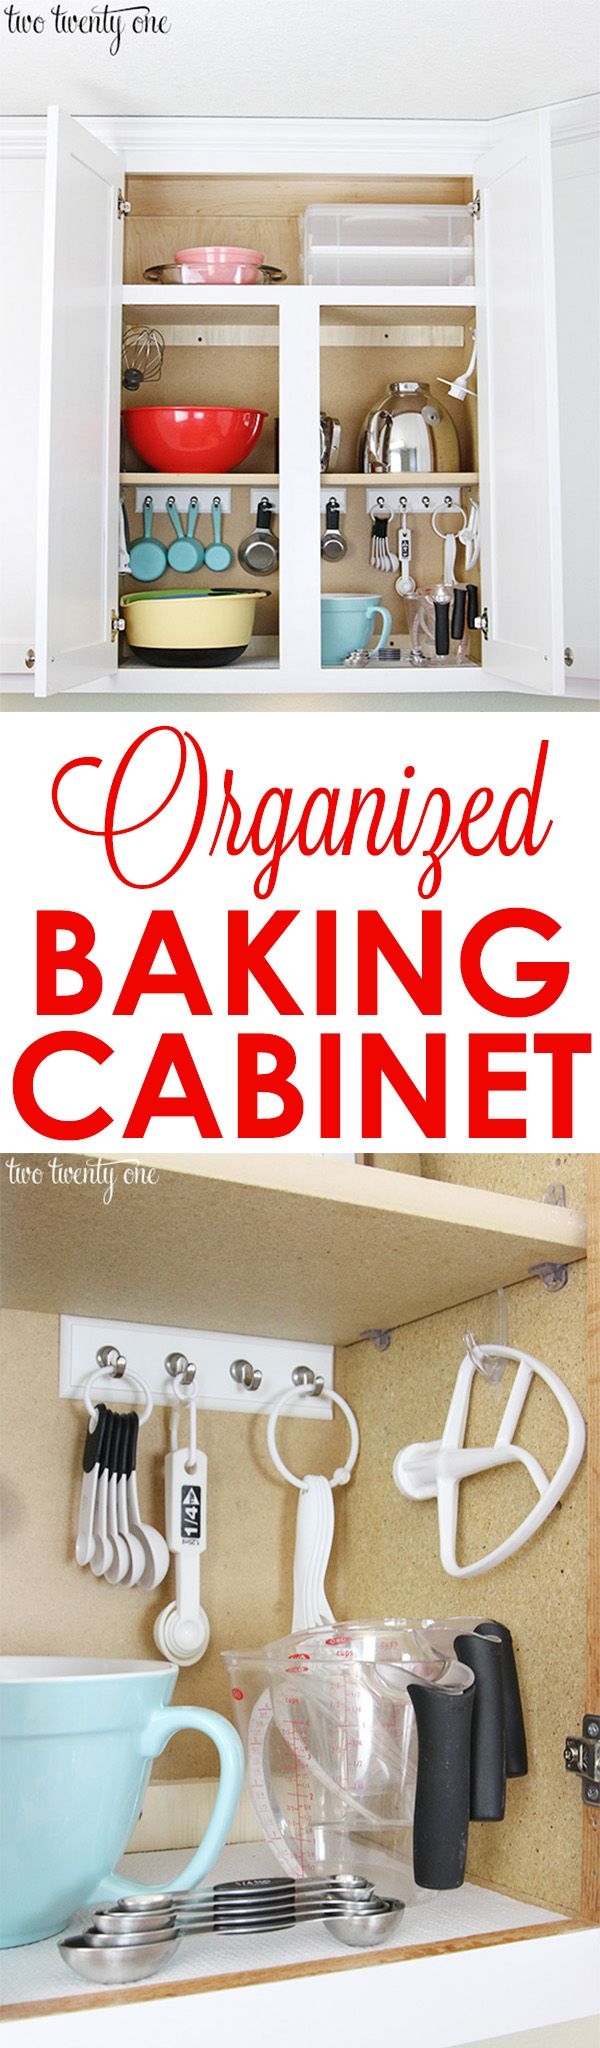 Kitchen Cupboard Organization 10 Organizing Tips Whimsy Wednesday Cabinets Spoons And Hooks